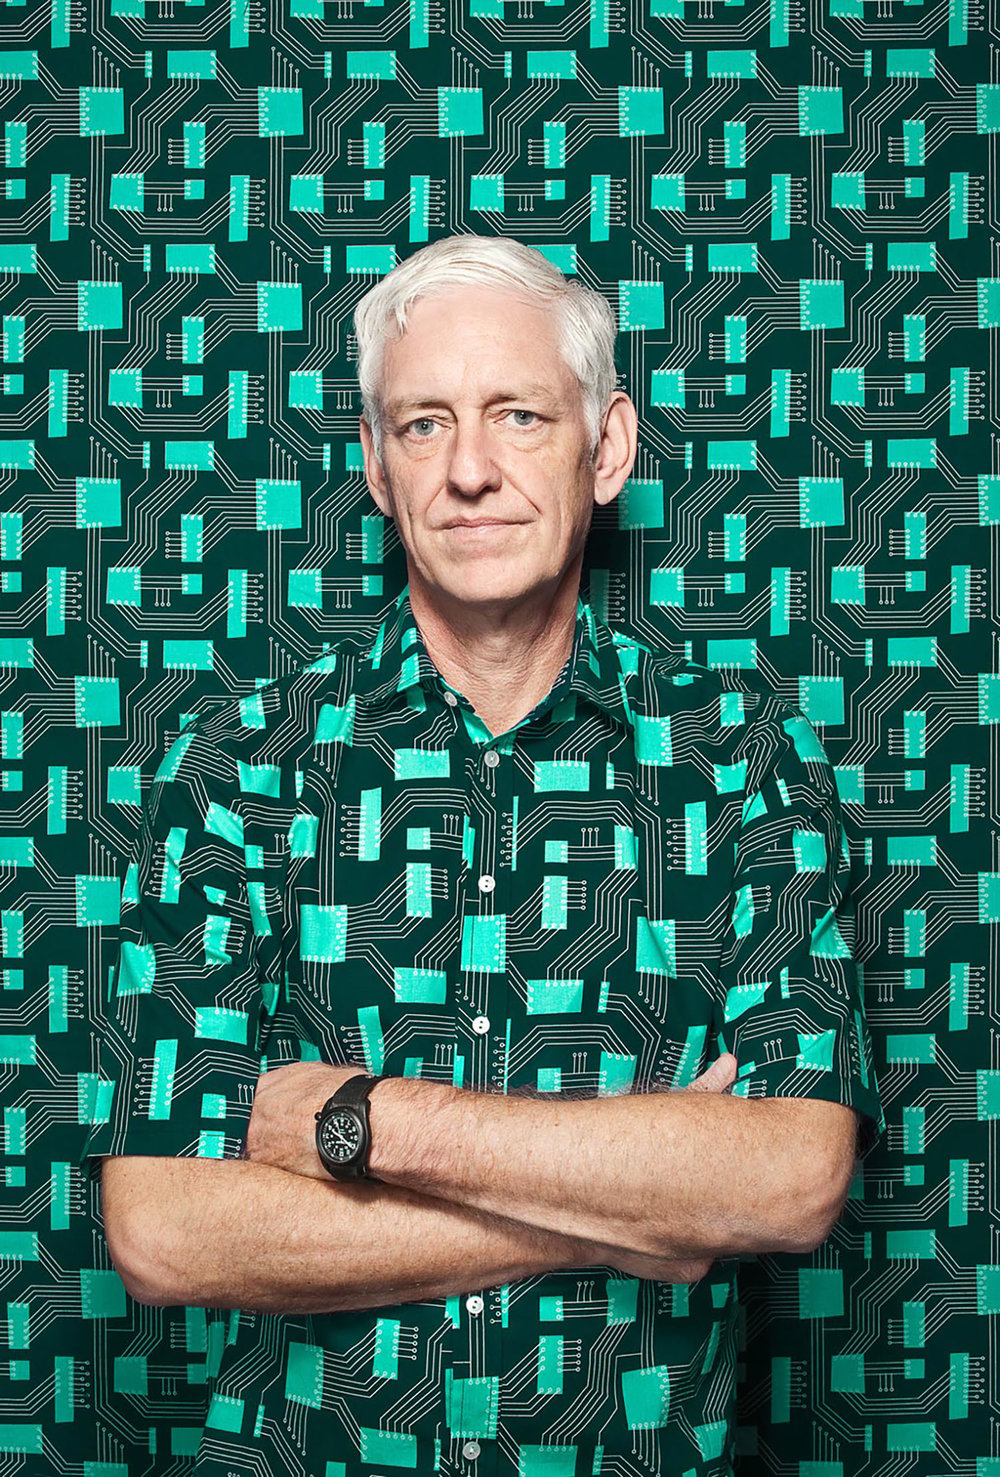 Peter Norvig, Director of Research at Google Inc, Mountain View, California, 2012